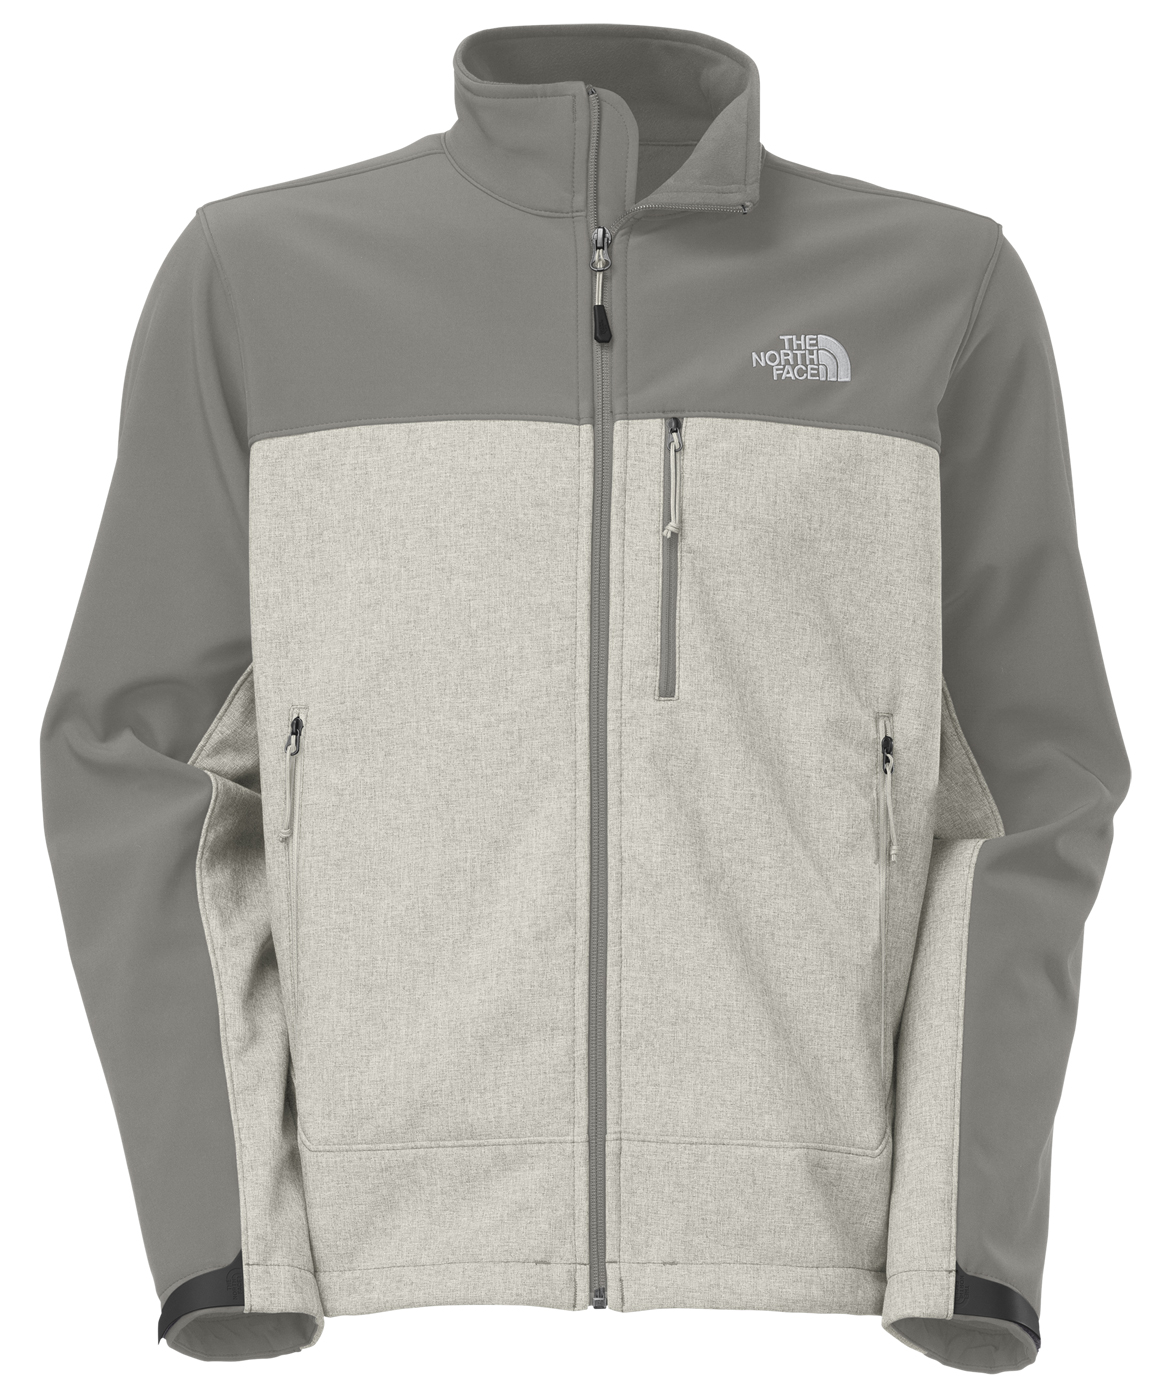 The North Face Apex Bionic Mens Jacket North Face Apex Jackets